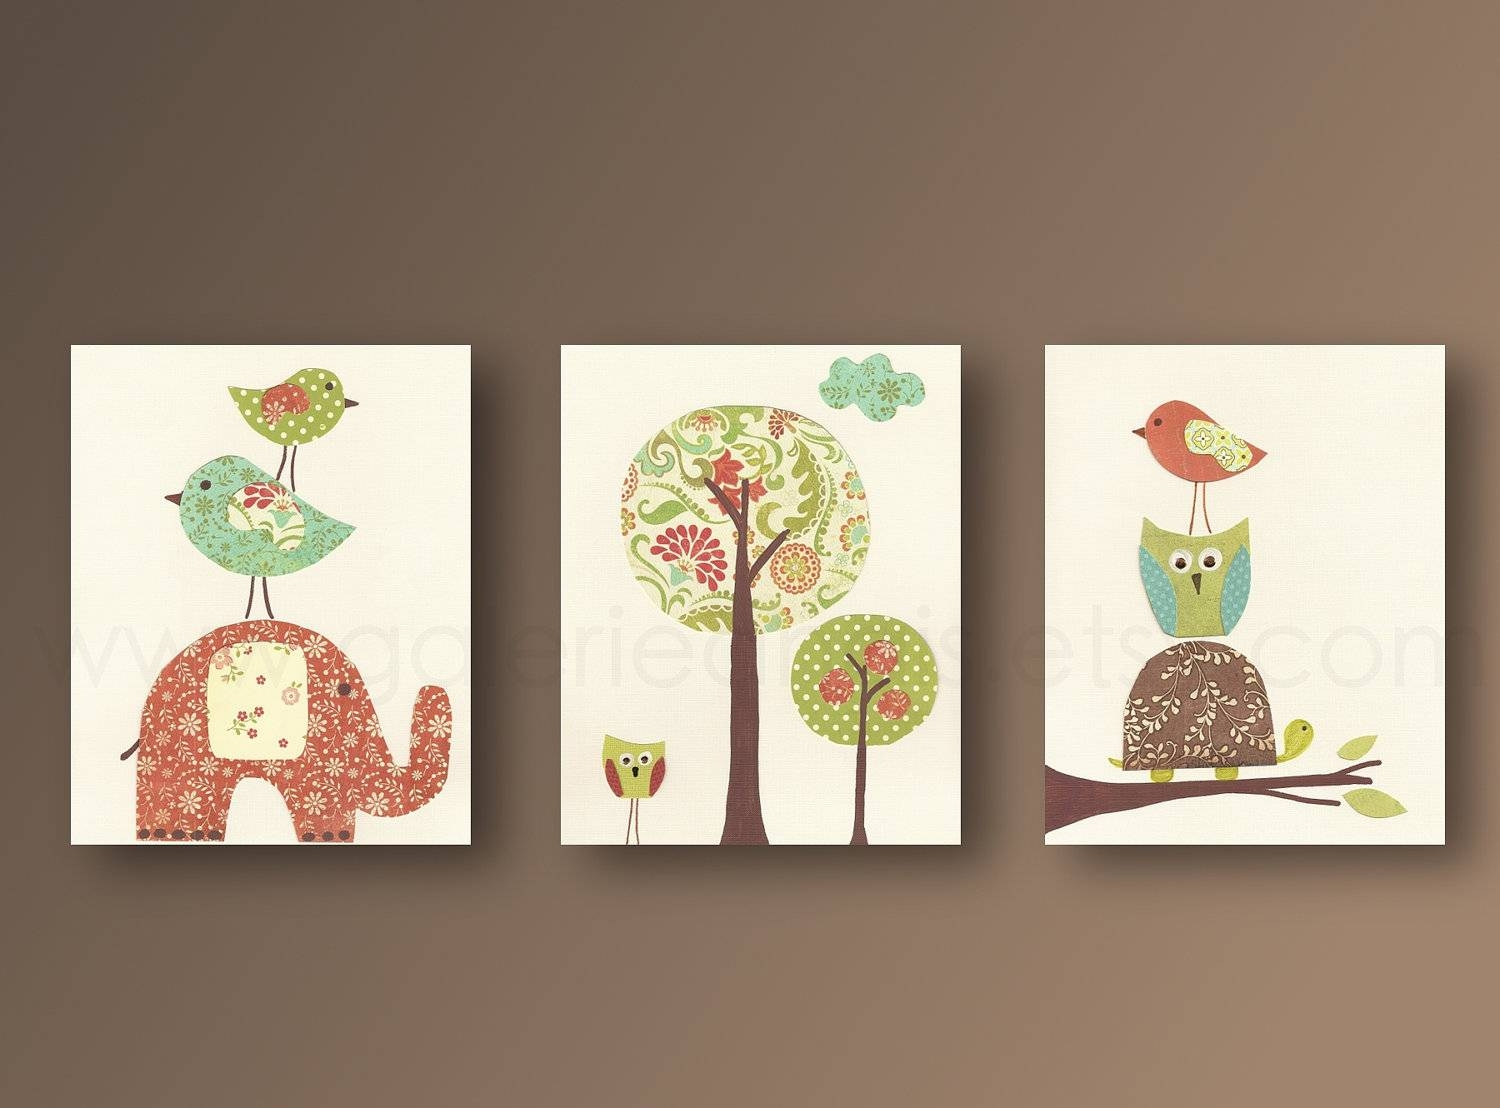 Nursery Wall Art Nursery Art Baby Nursery Kids Room Decor Owl In Most Recent Canvas Prints For Baby Nursery (View 17 of 20)